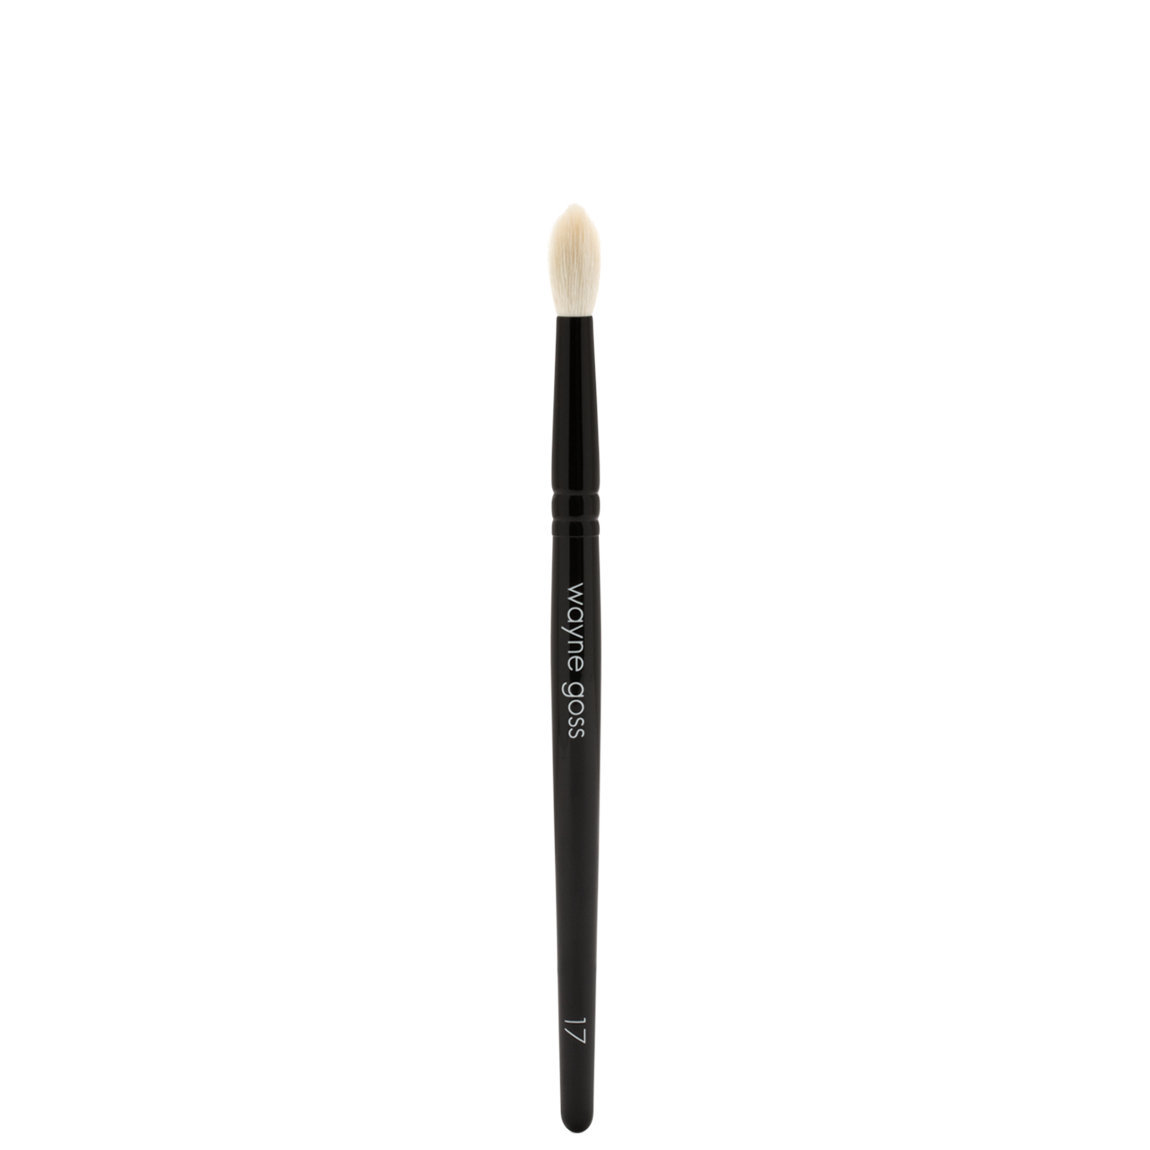 Wayne Goss Brush 17 Eye Shadow Crease Brush